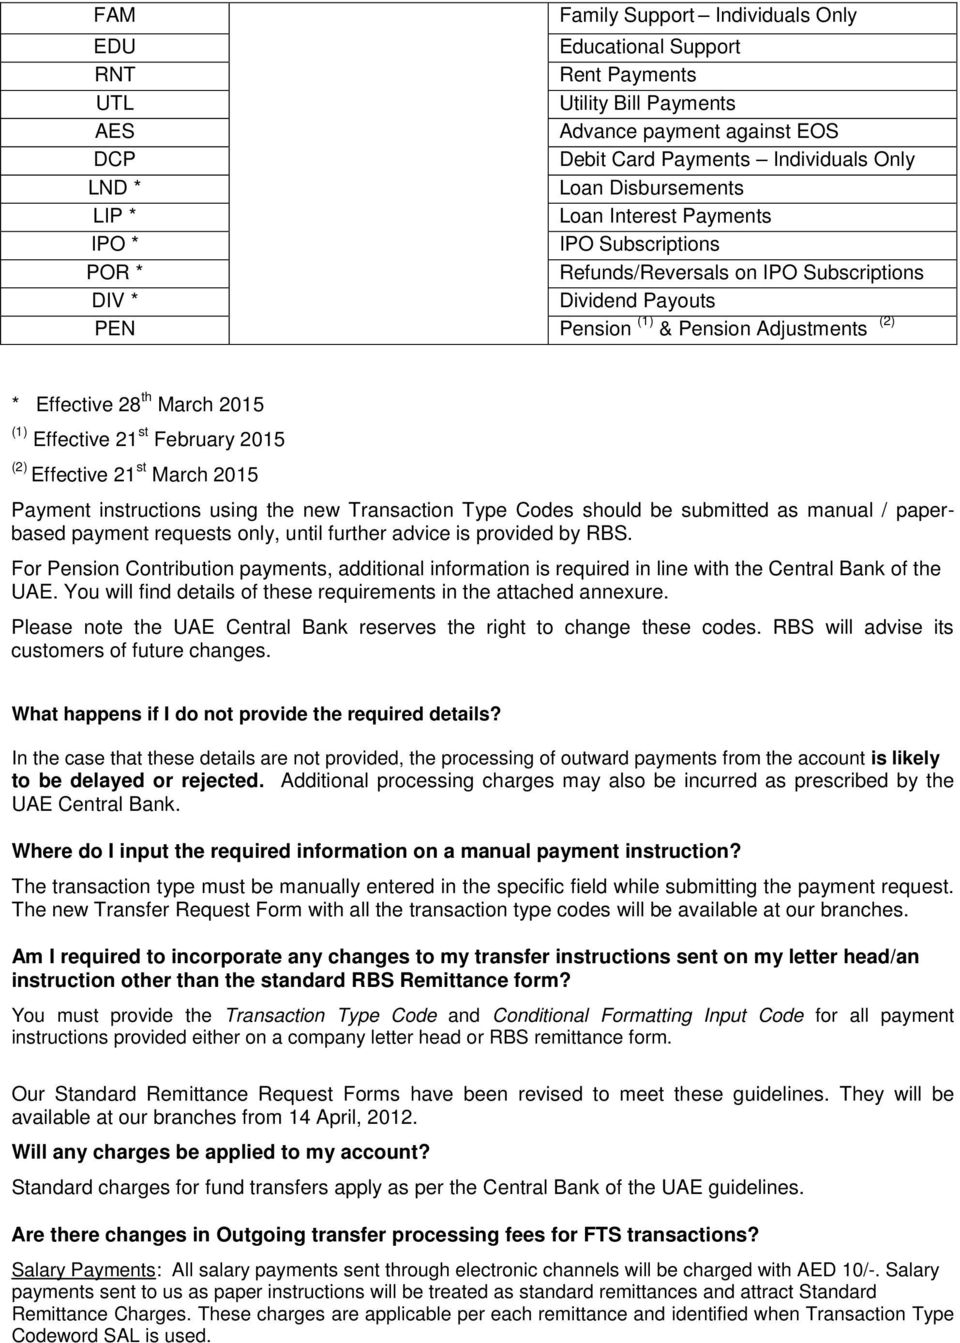 Faq On The Uae Funds Transfer System Fts Pdf Should It Be Of Interest An Electronic Copy This Manual Is March 2015 1 Effective 21 St February 2